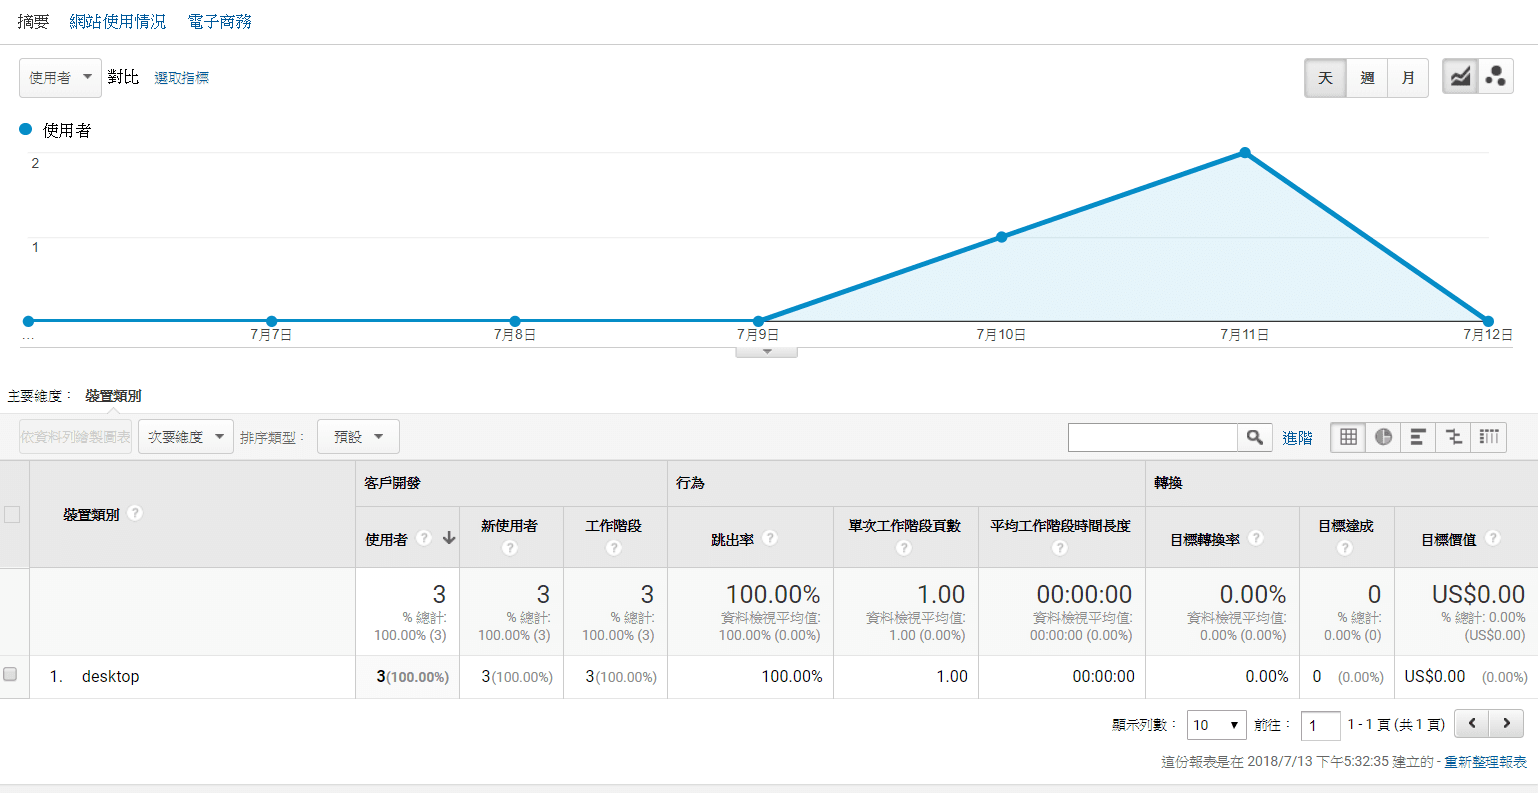 Google analytics graph and data